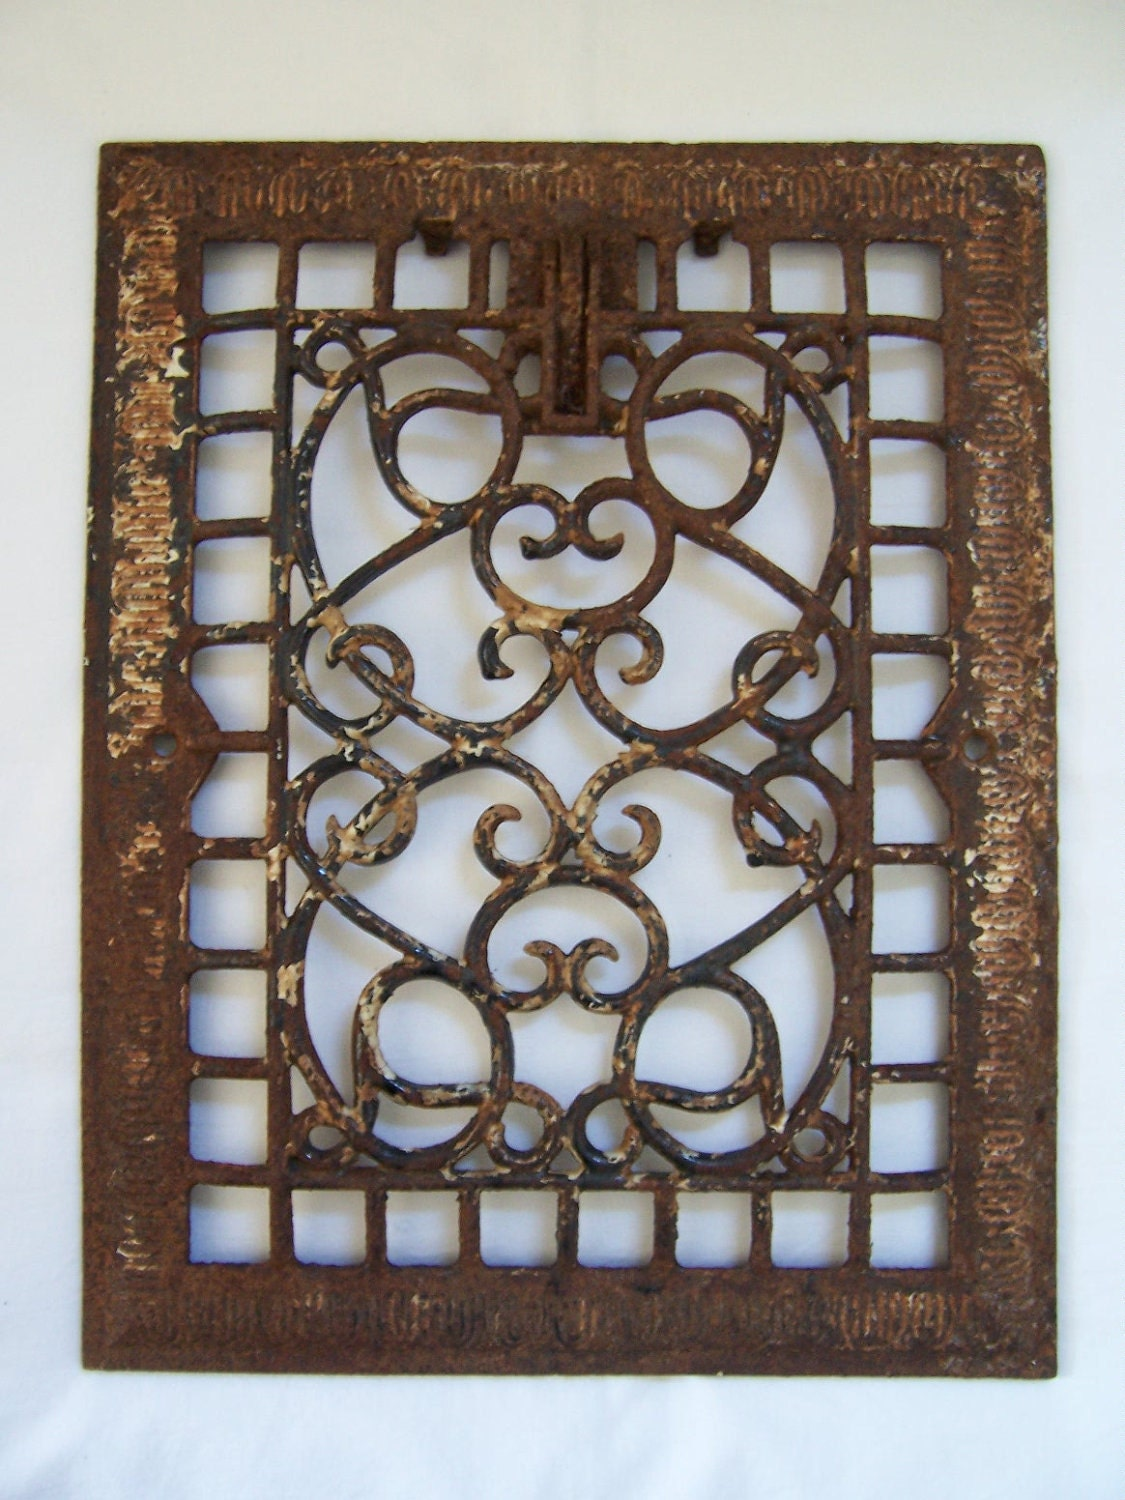 Vintage Cast Iron Heat Grate - Architectural Salvage - Scroll Design